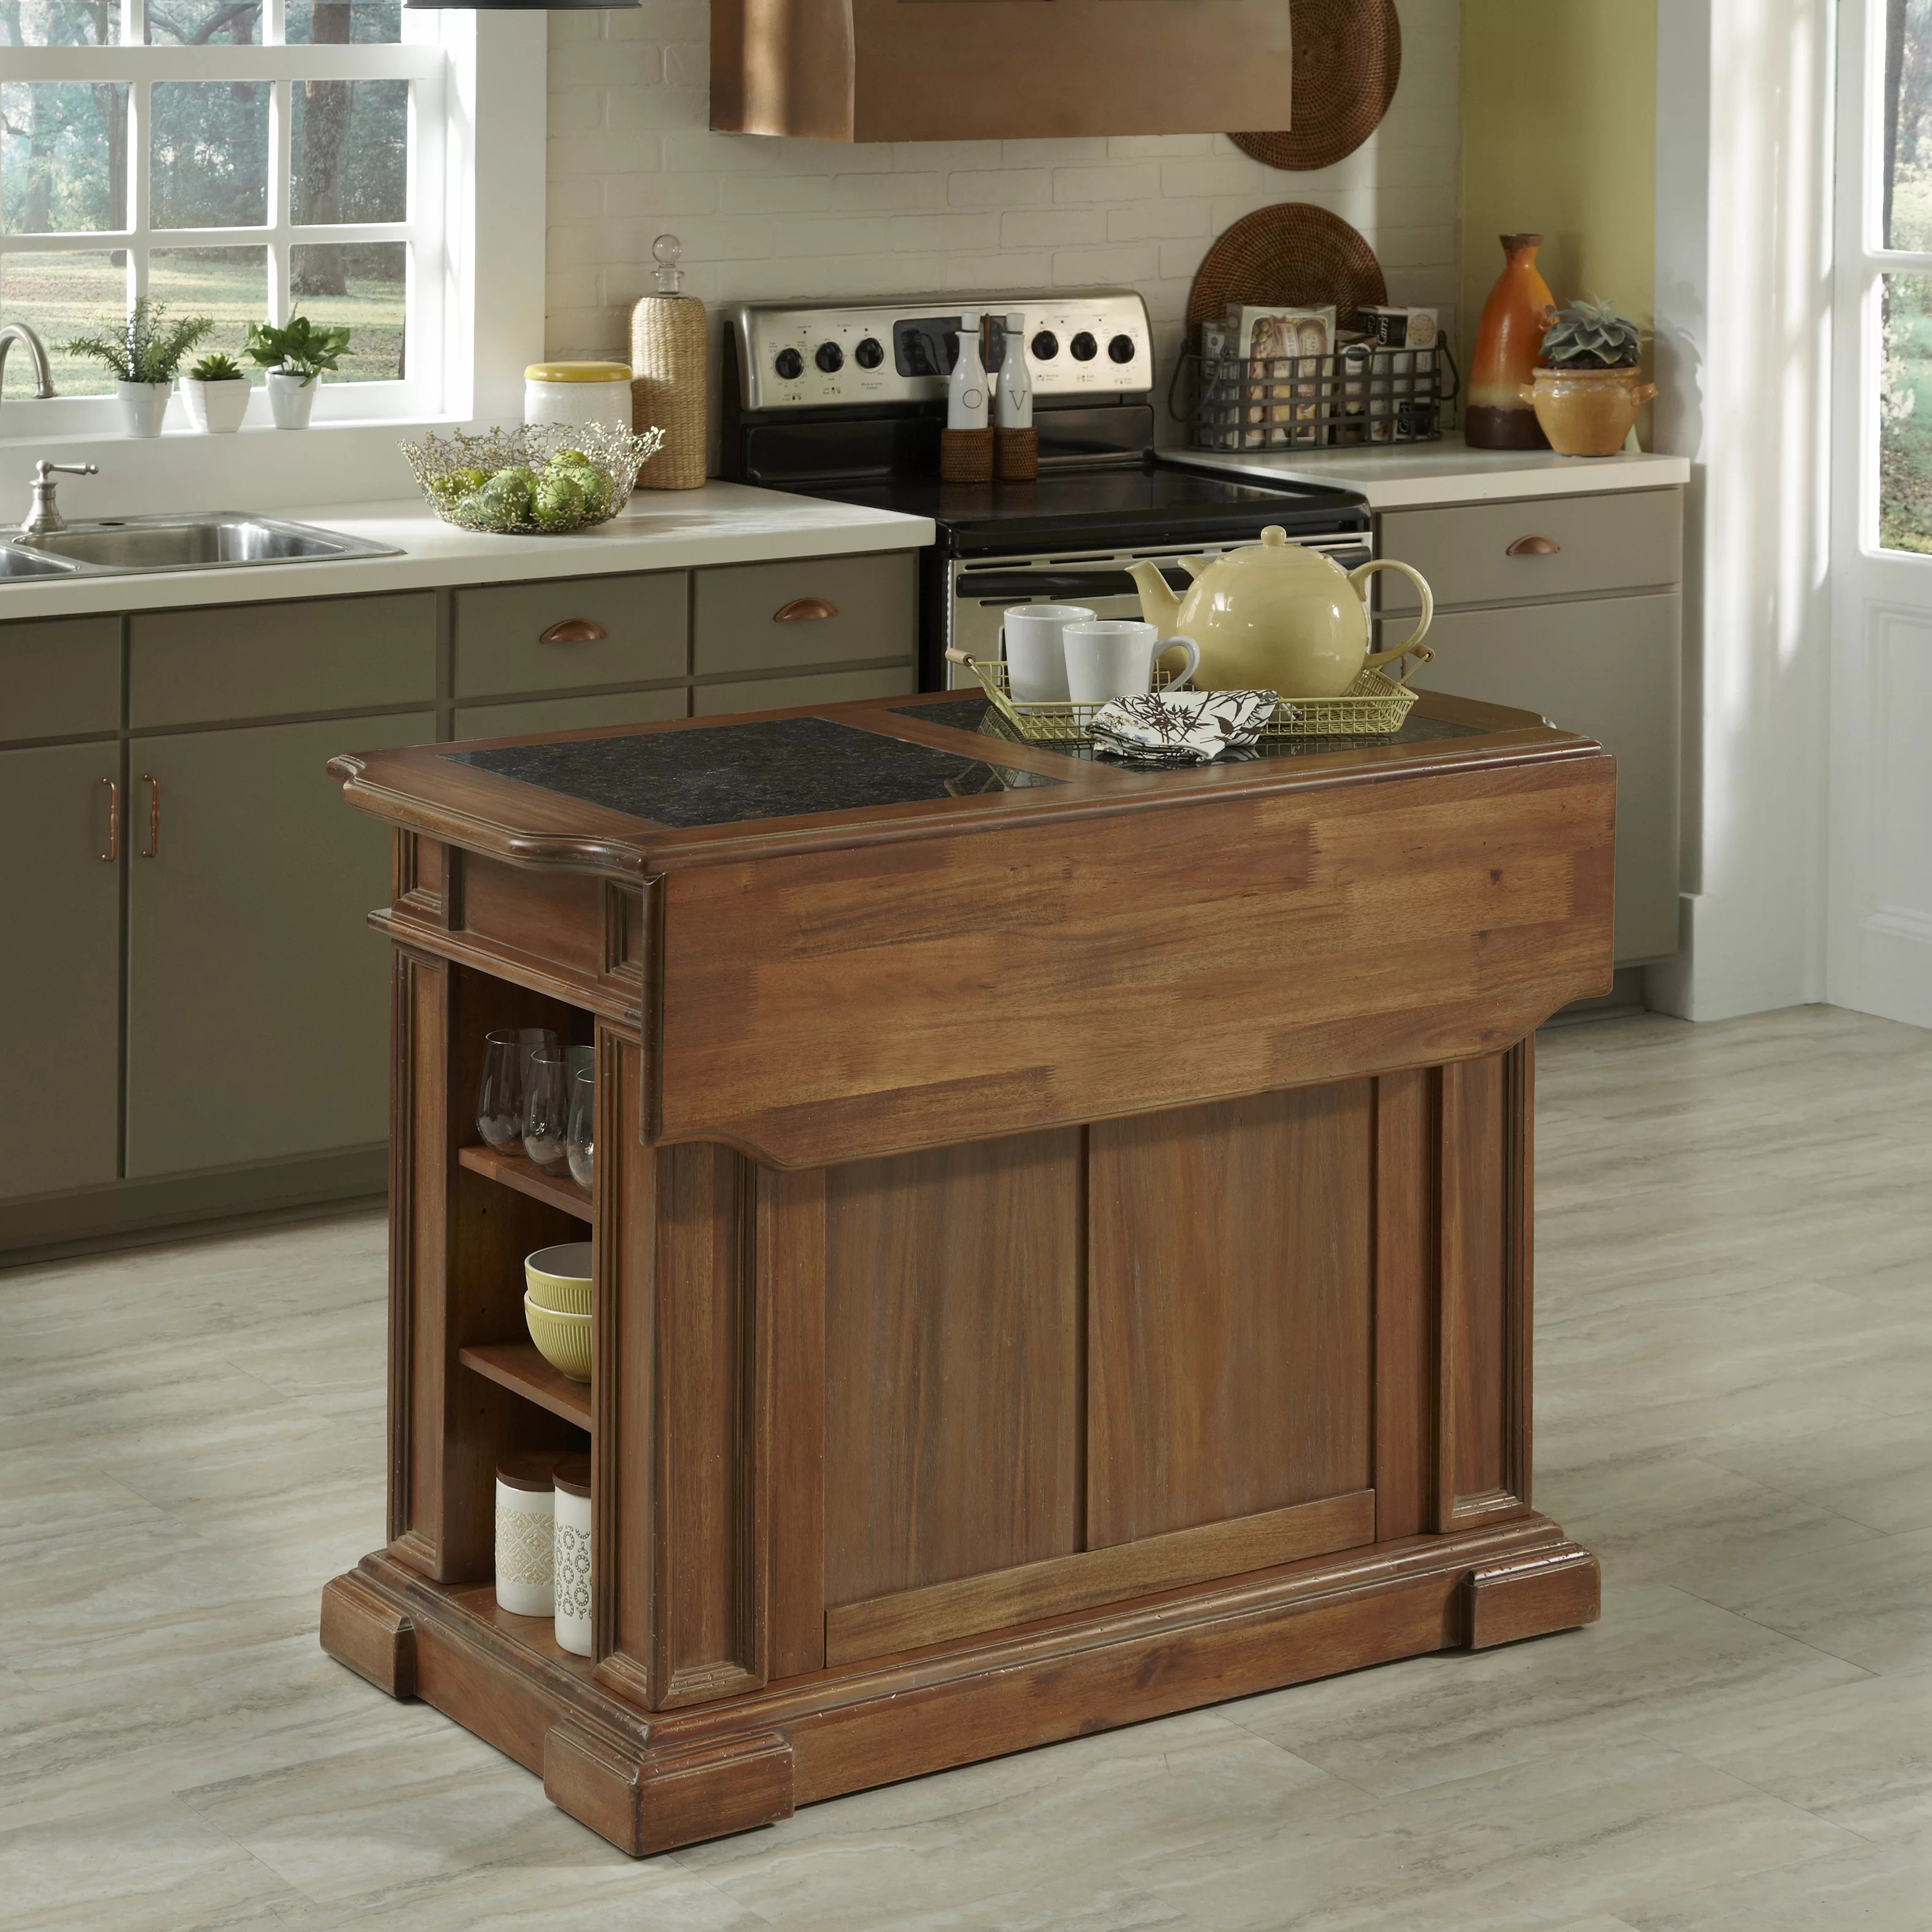 Granite Kitchen Islands Home Styles Americana Kitchen Island With Granite Top